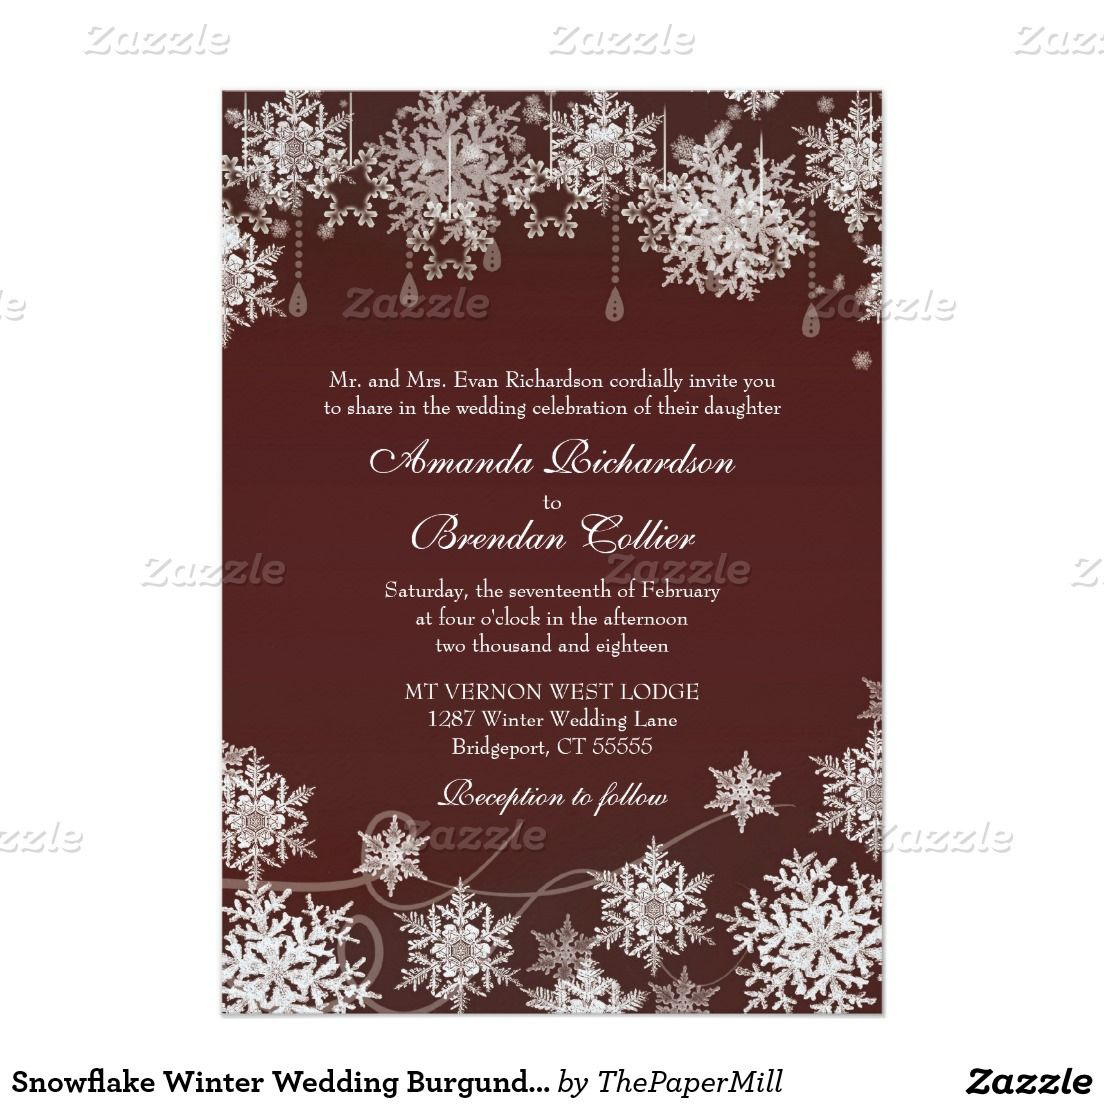 Snowflake Winter Wedding Burgundy Red and White Card | Snowflakes ...